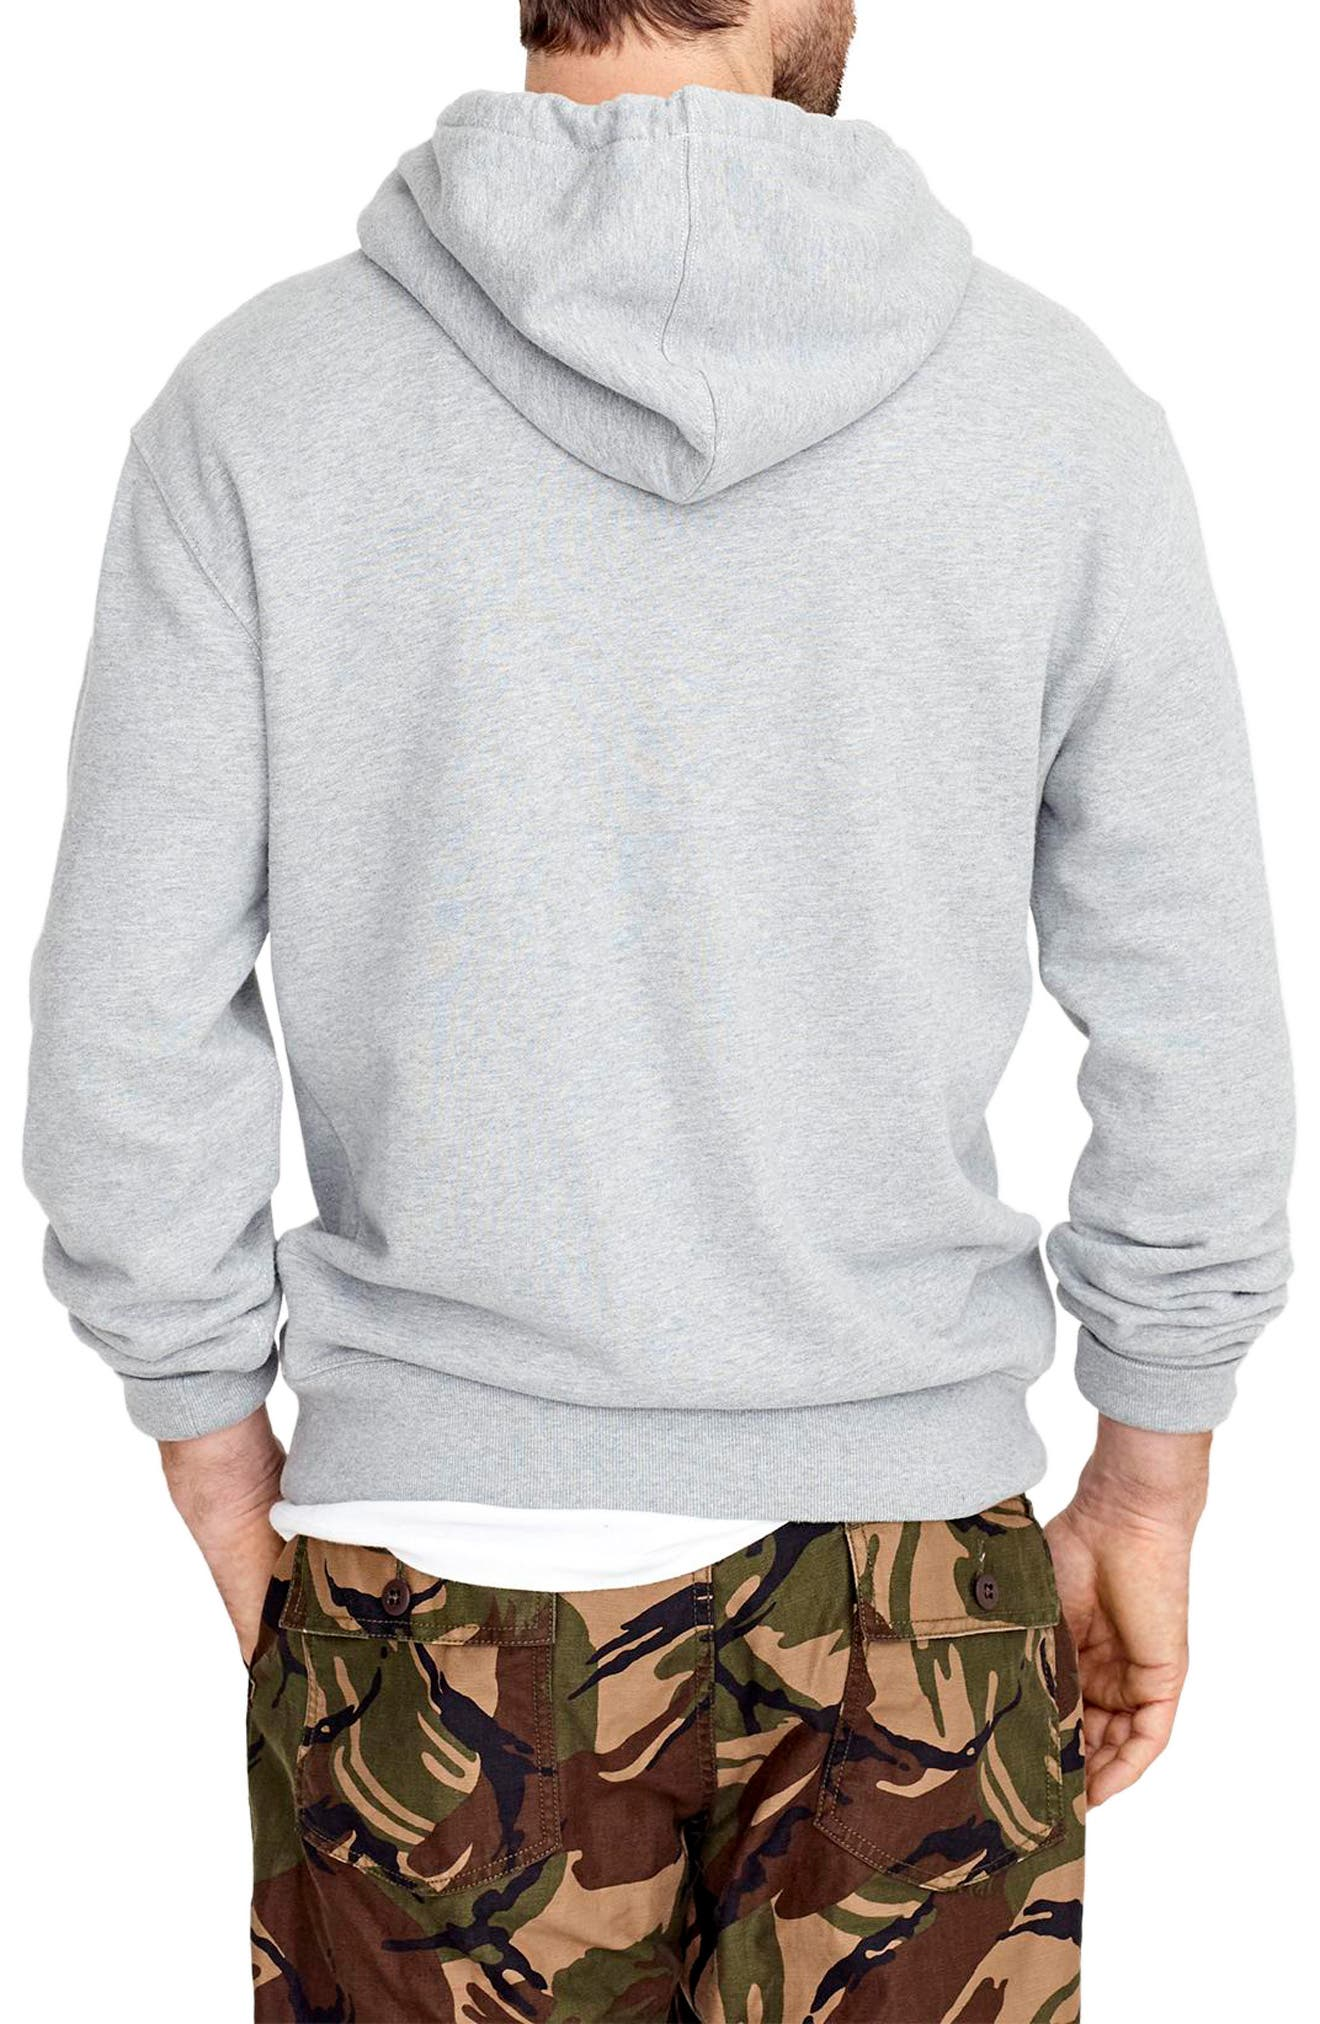 French Terry Pullover Hoodie,                             Alternate thumbnail 2, color,                             021